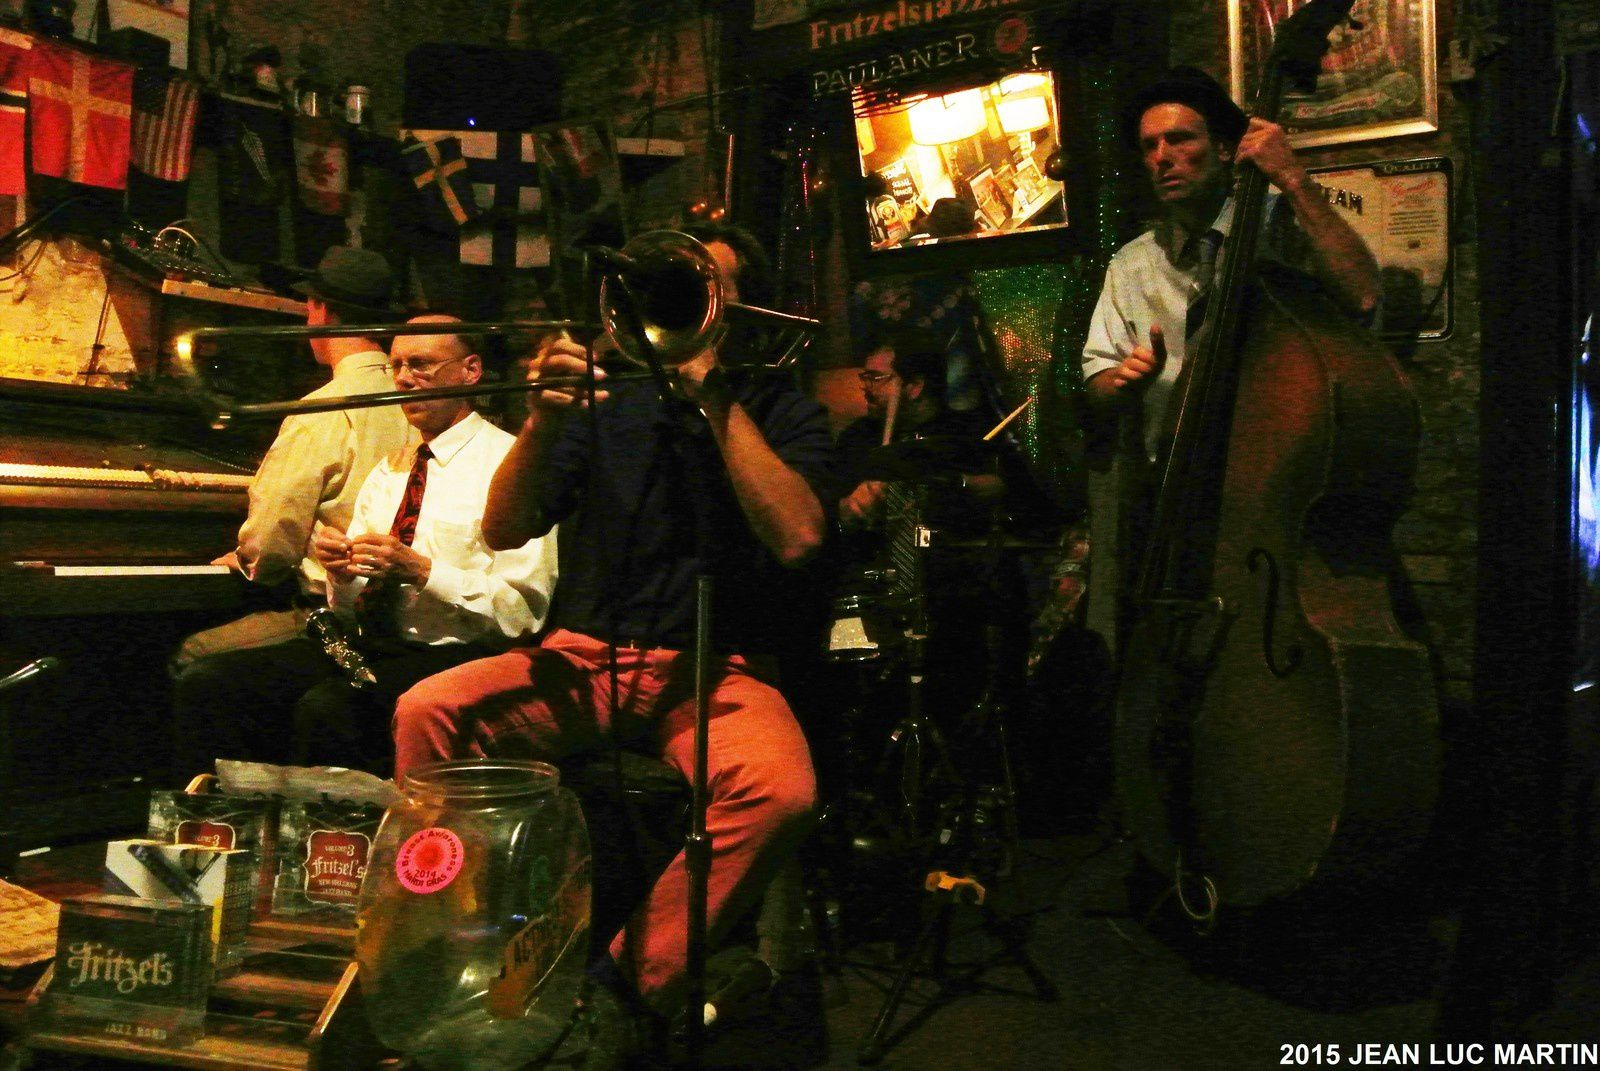 FITZEL'S JAZZ BAND AU FITZEL'S A NEW ORLEANS LE 23/04/2015